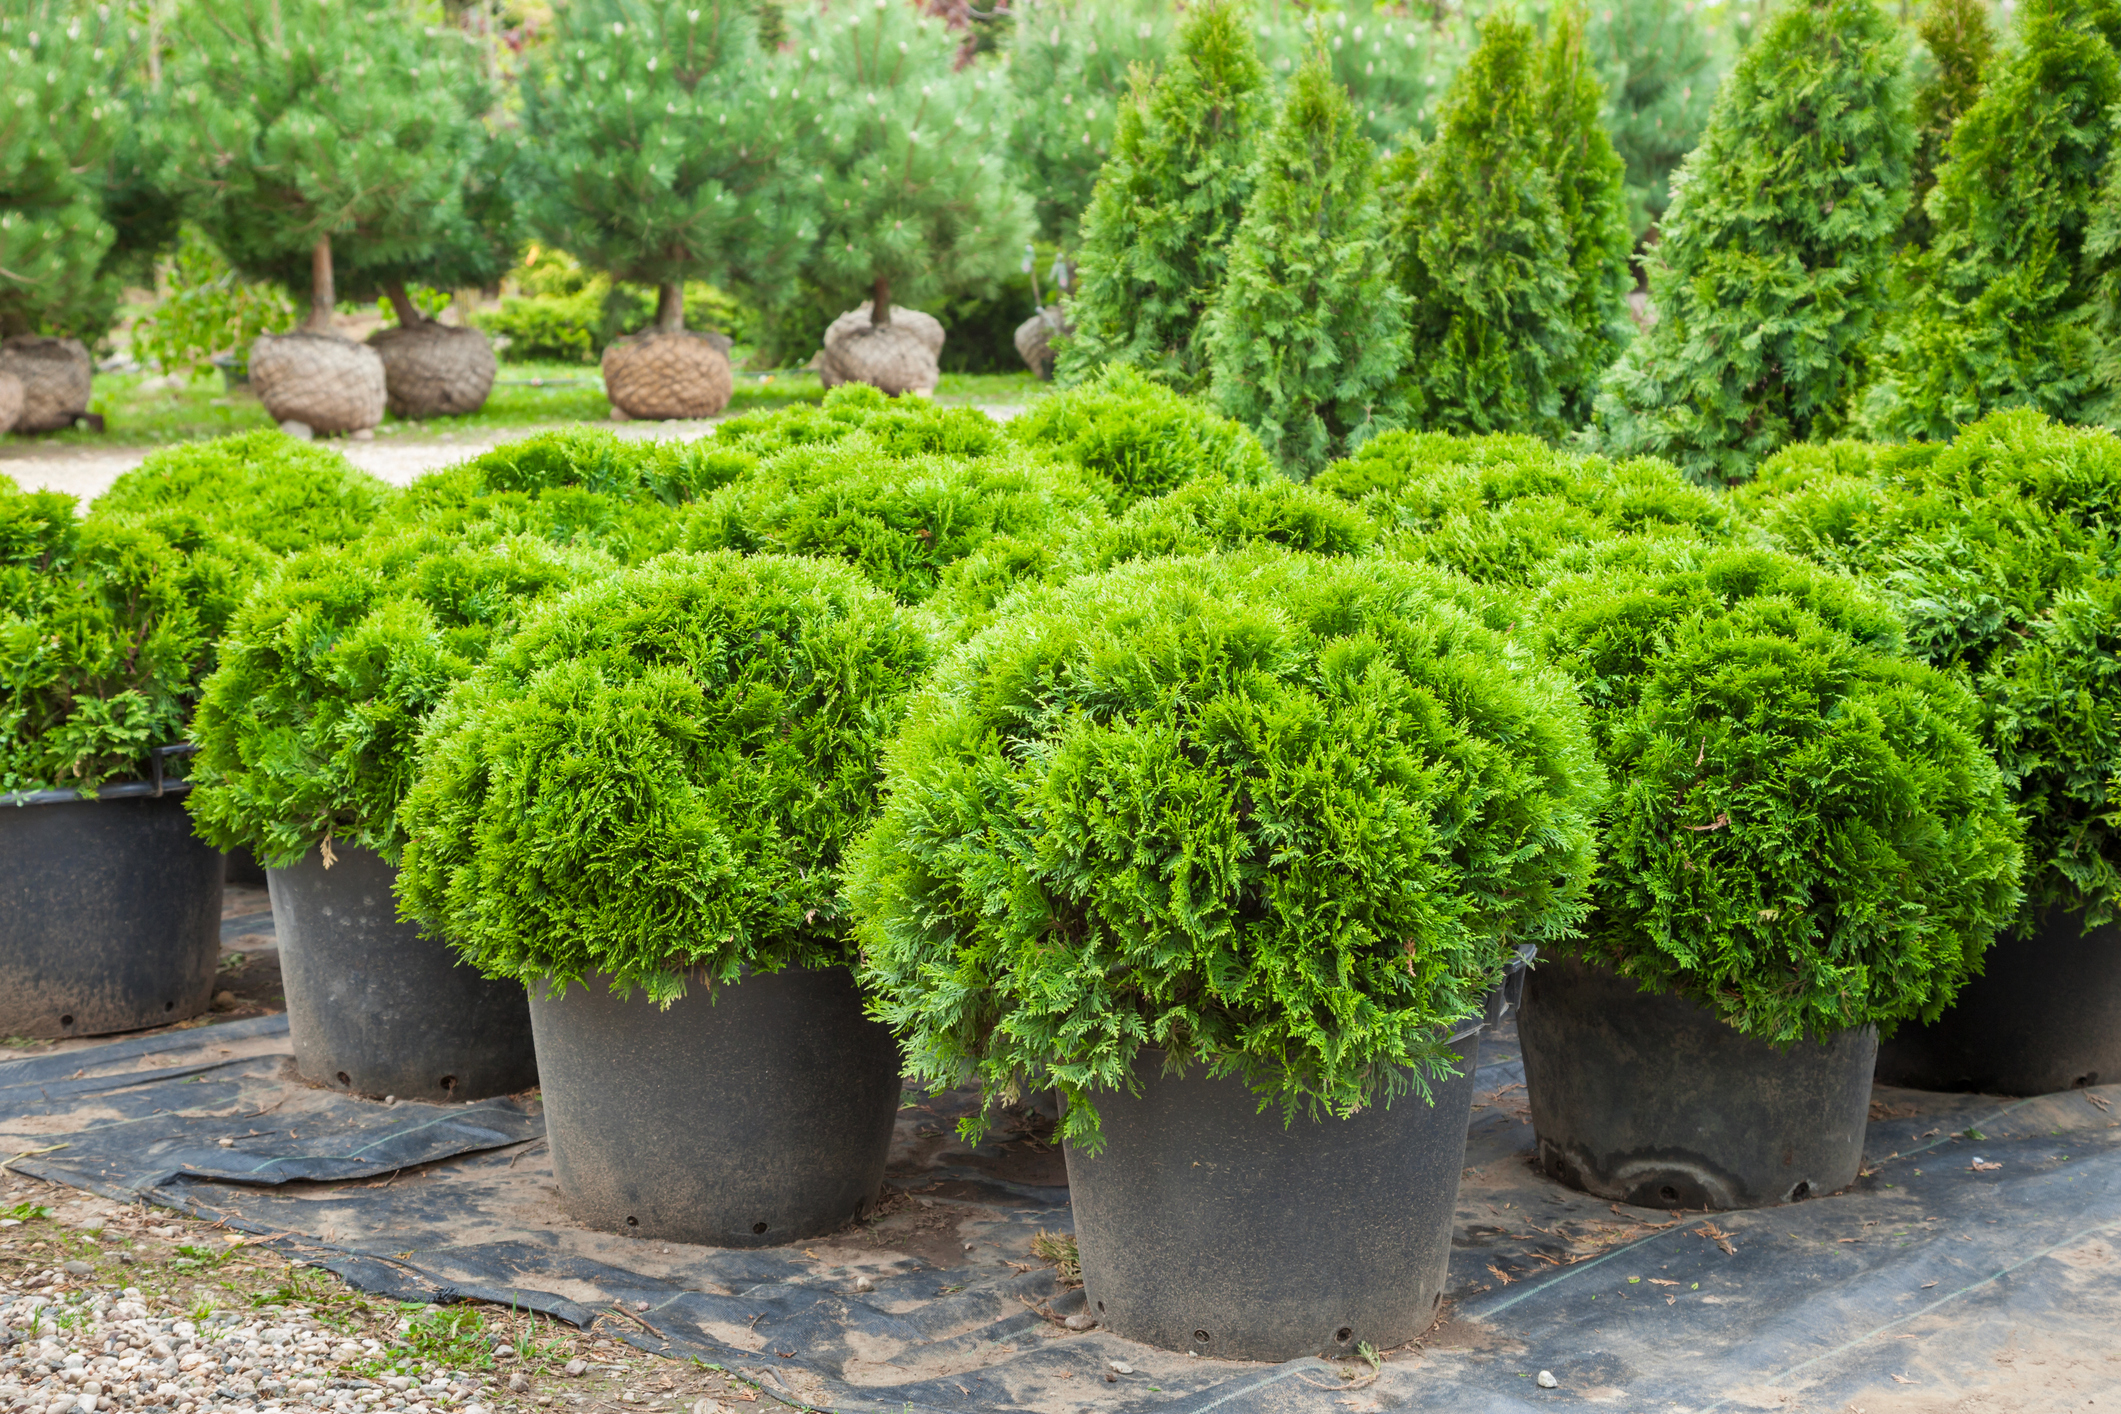 dc3f916f-4531-429c-9575-613a016d6473 Garden Design With Yew Hedge And Planter on